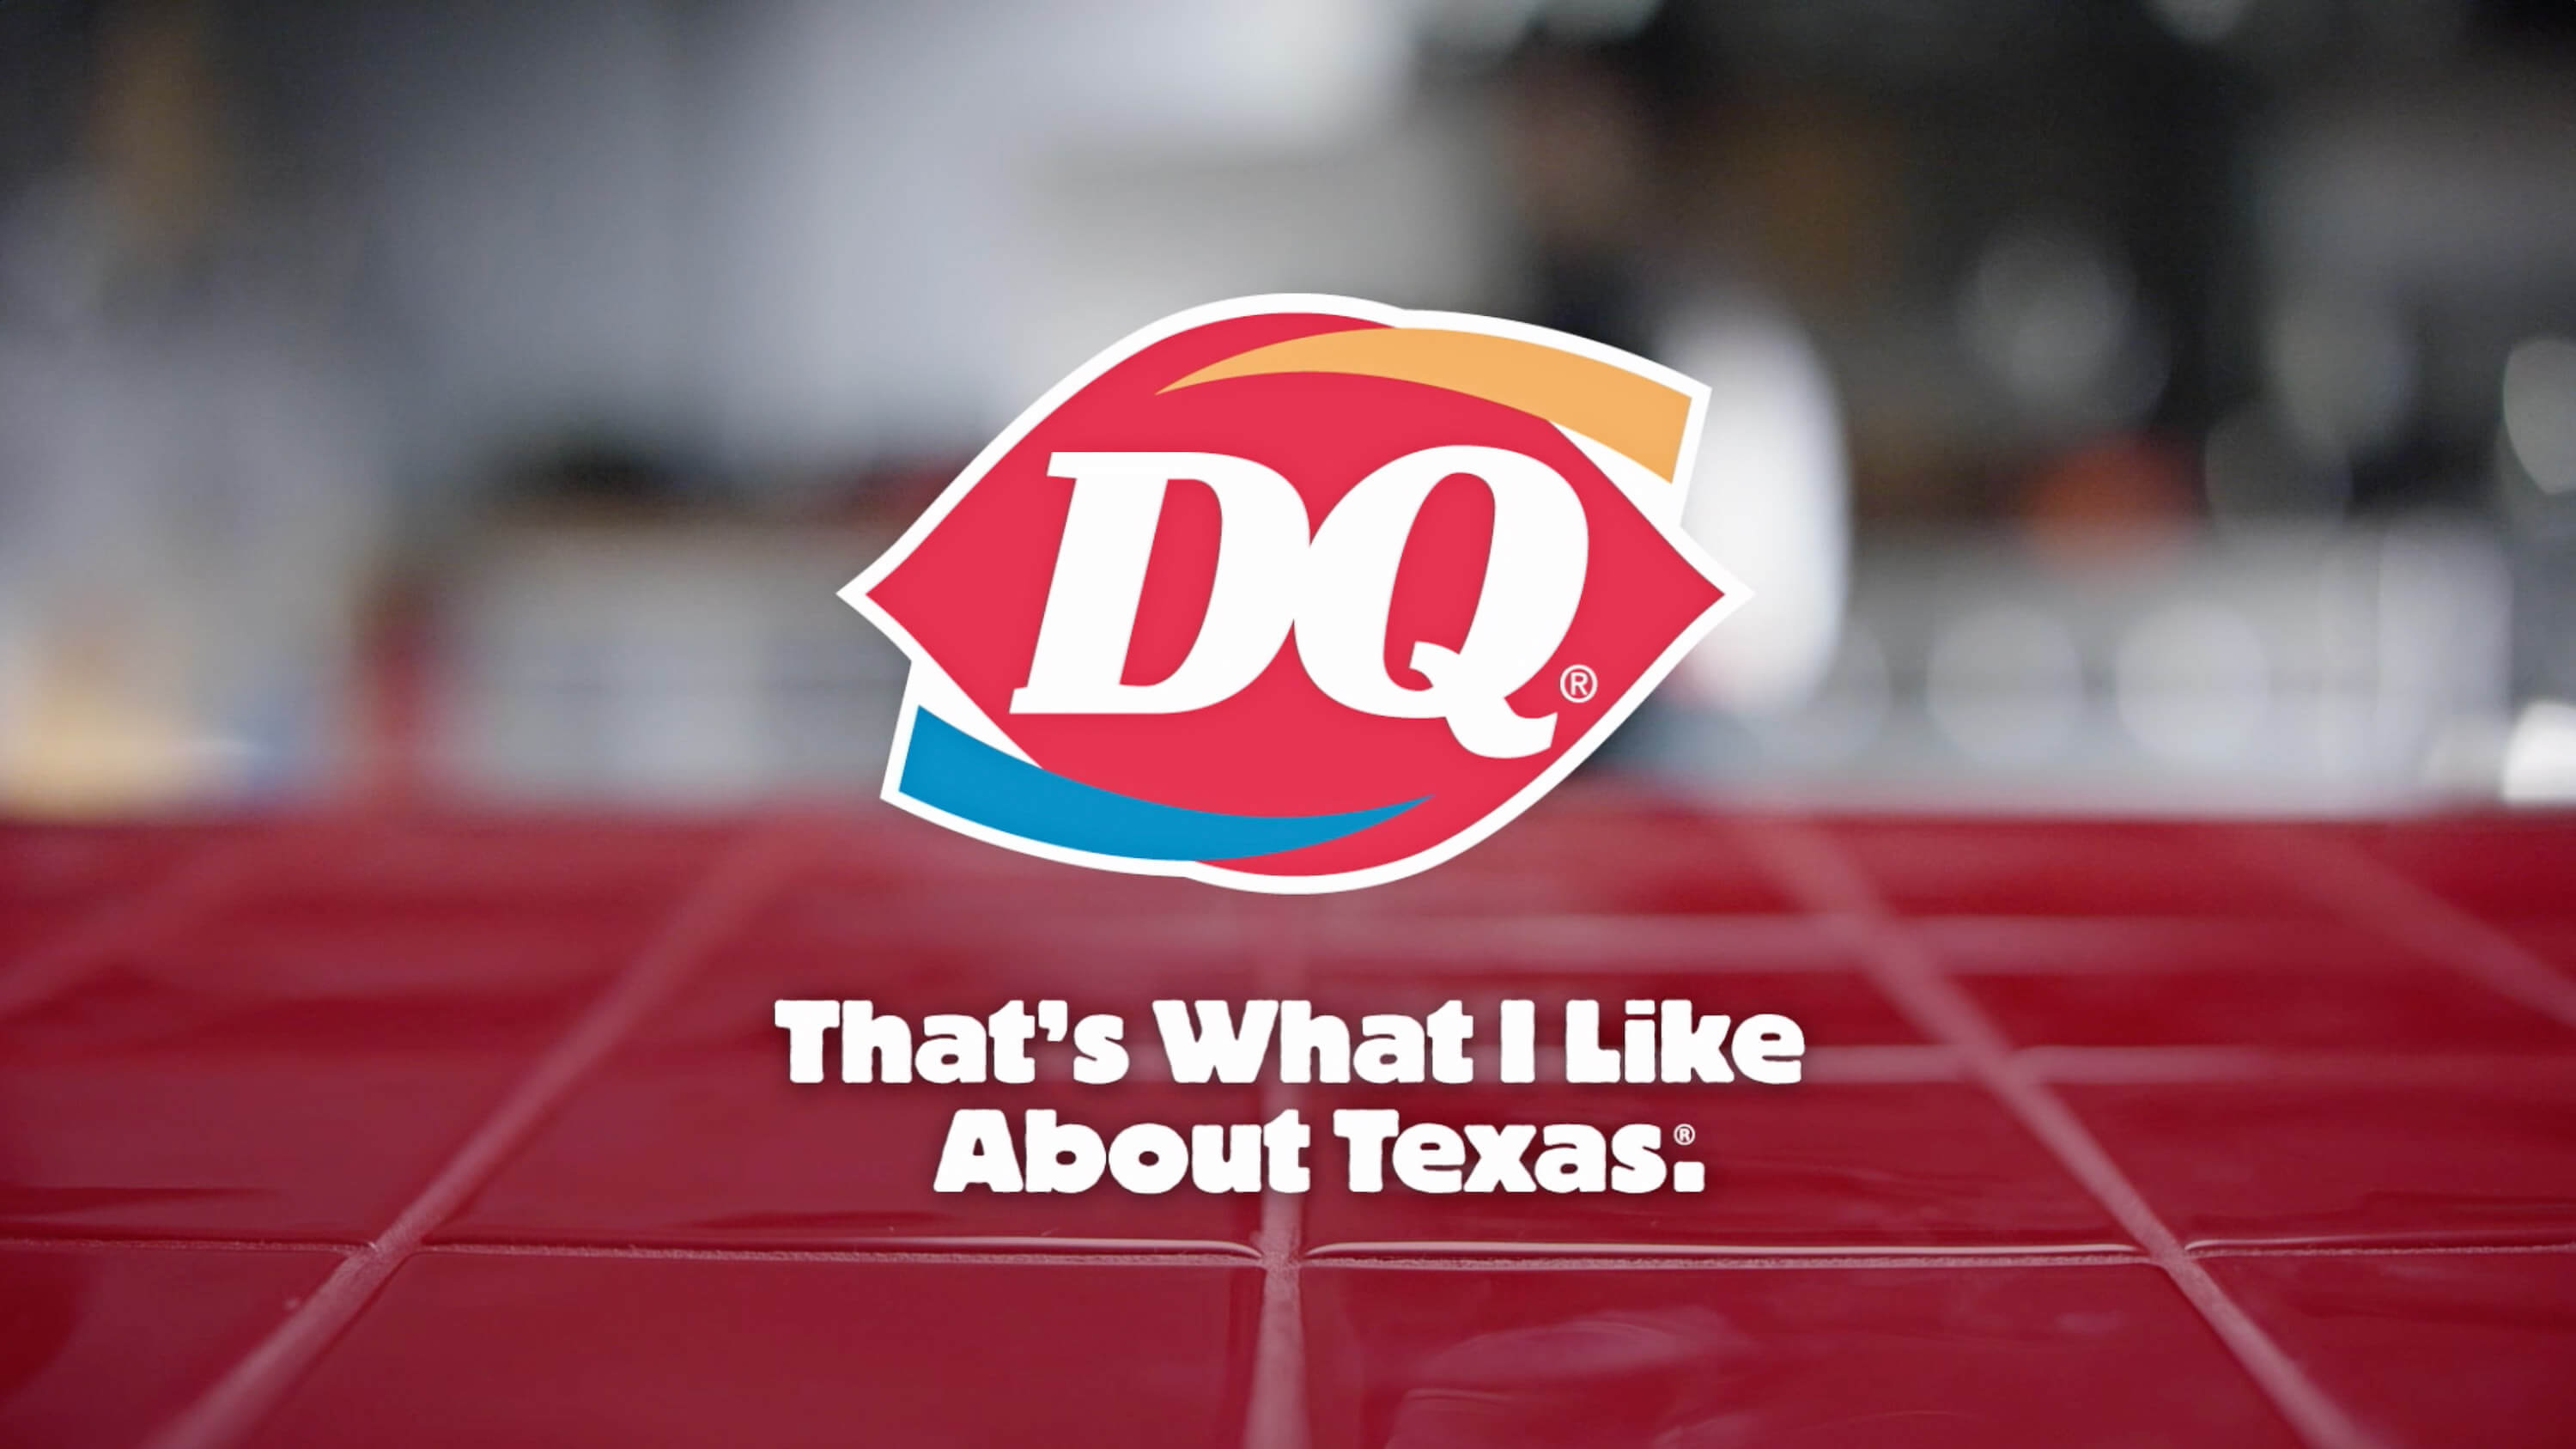 Texas Dairy Queen That S What I Like About Texas The